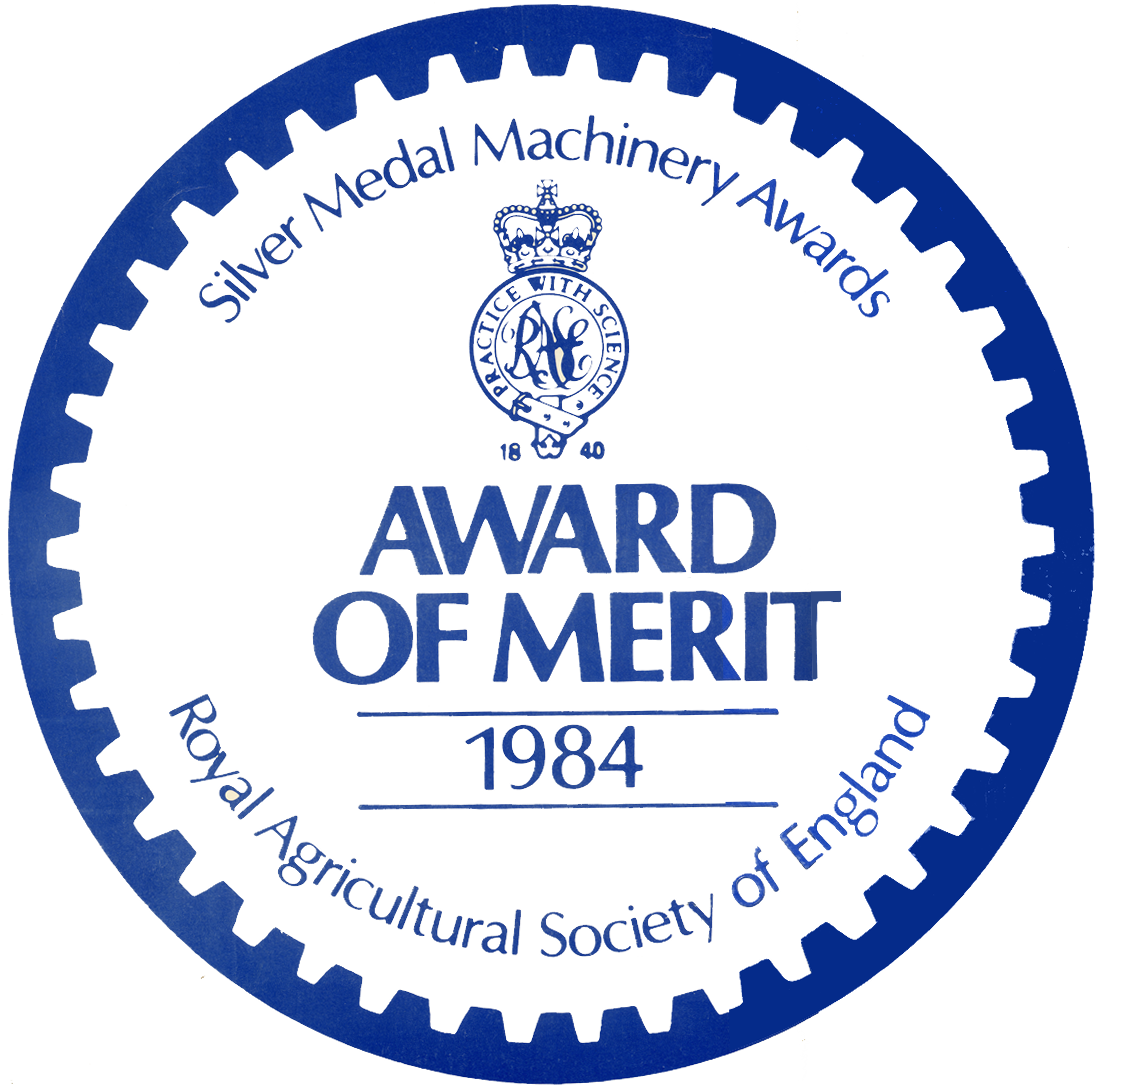 Awards of the Royal Agricultural Society of England